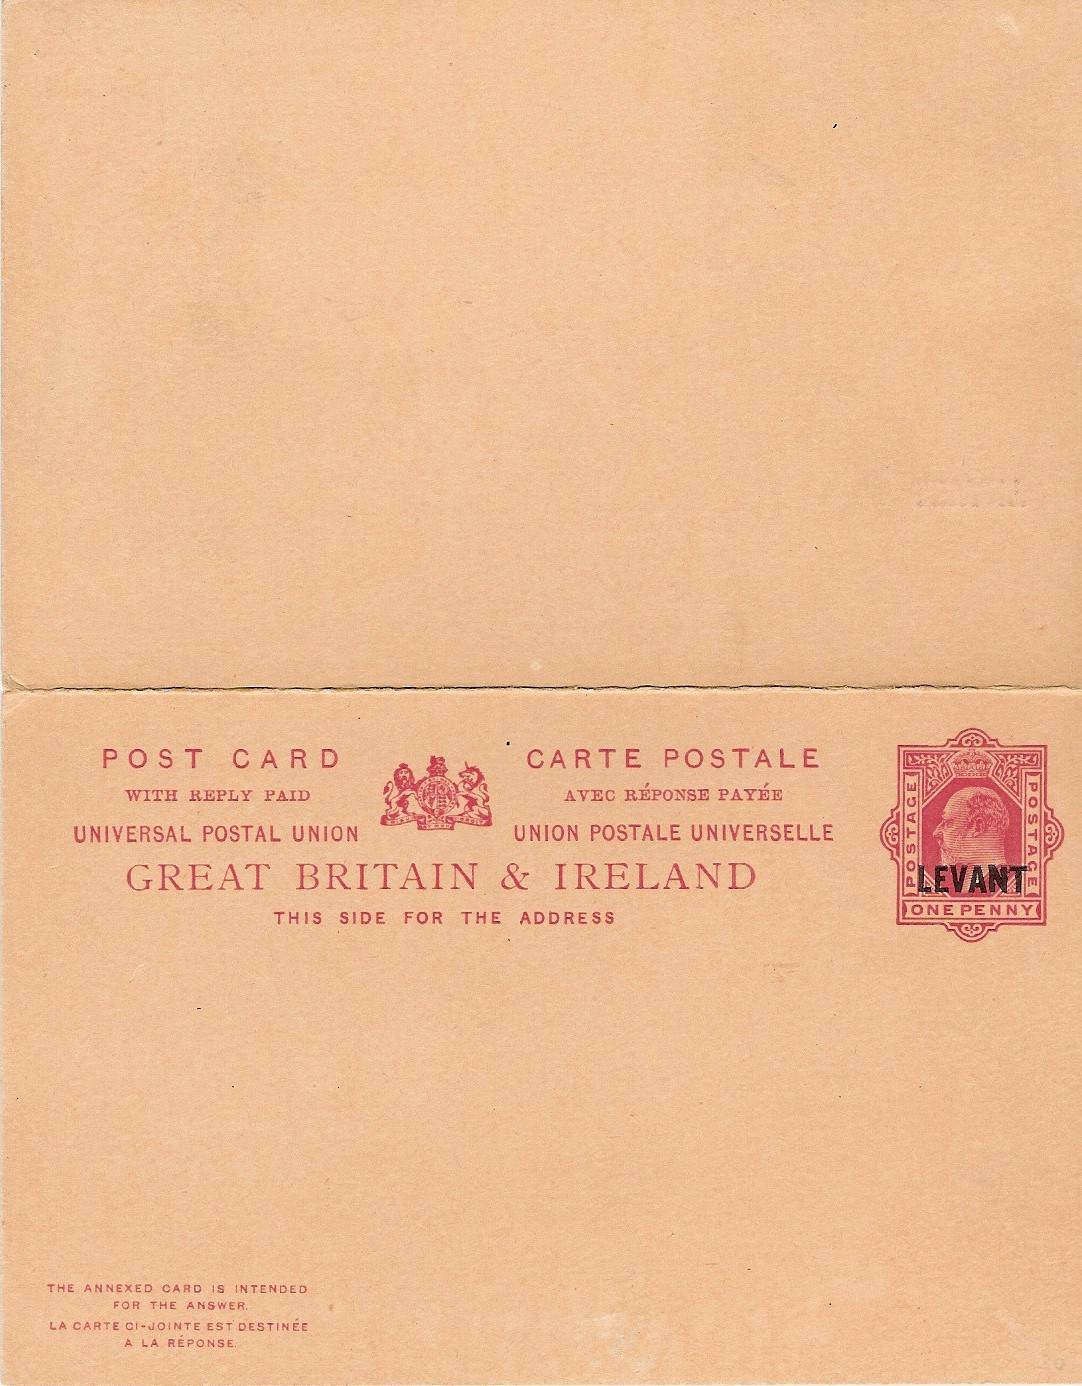 Levant (UK) 1d with inscr reply card outward